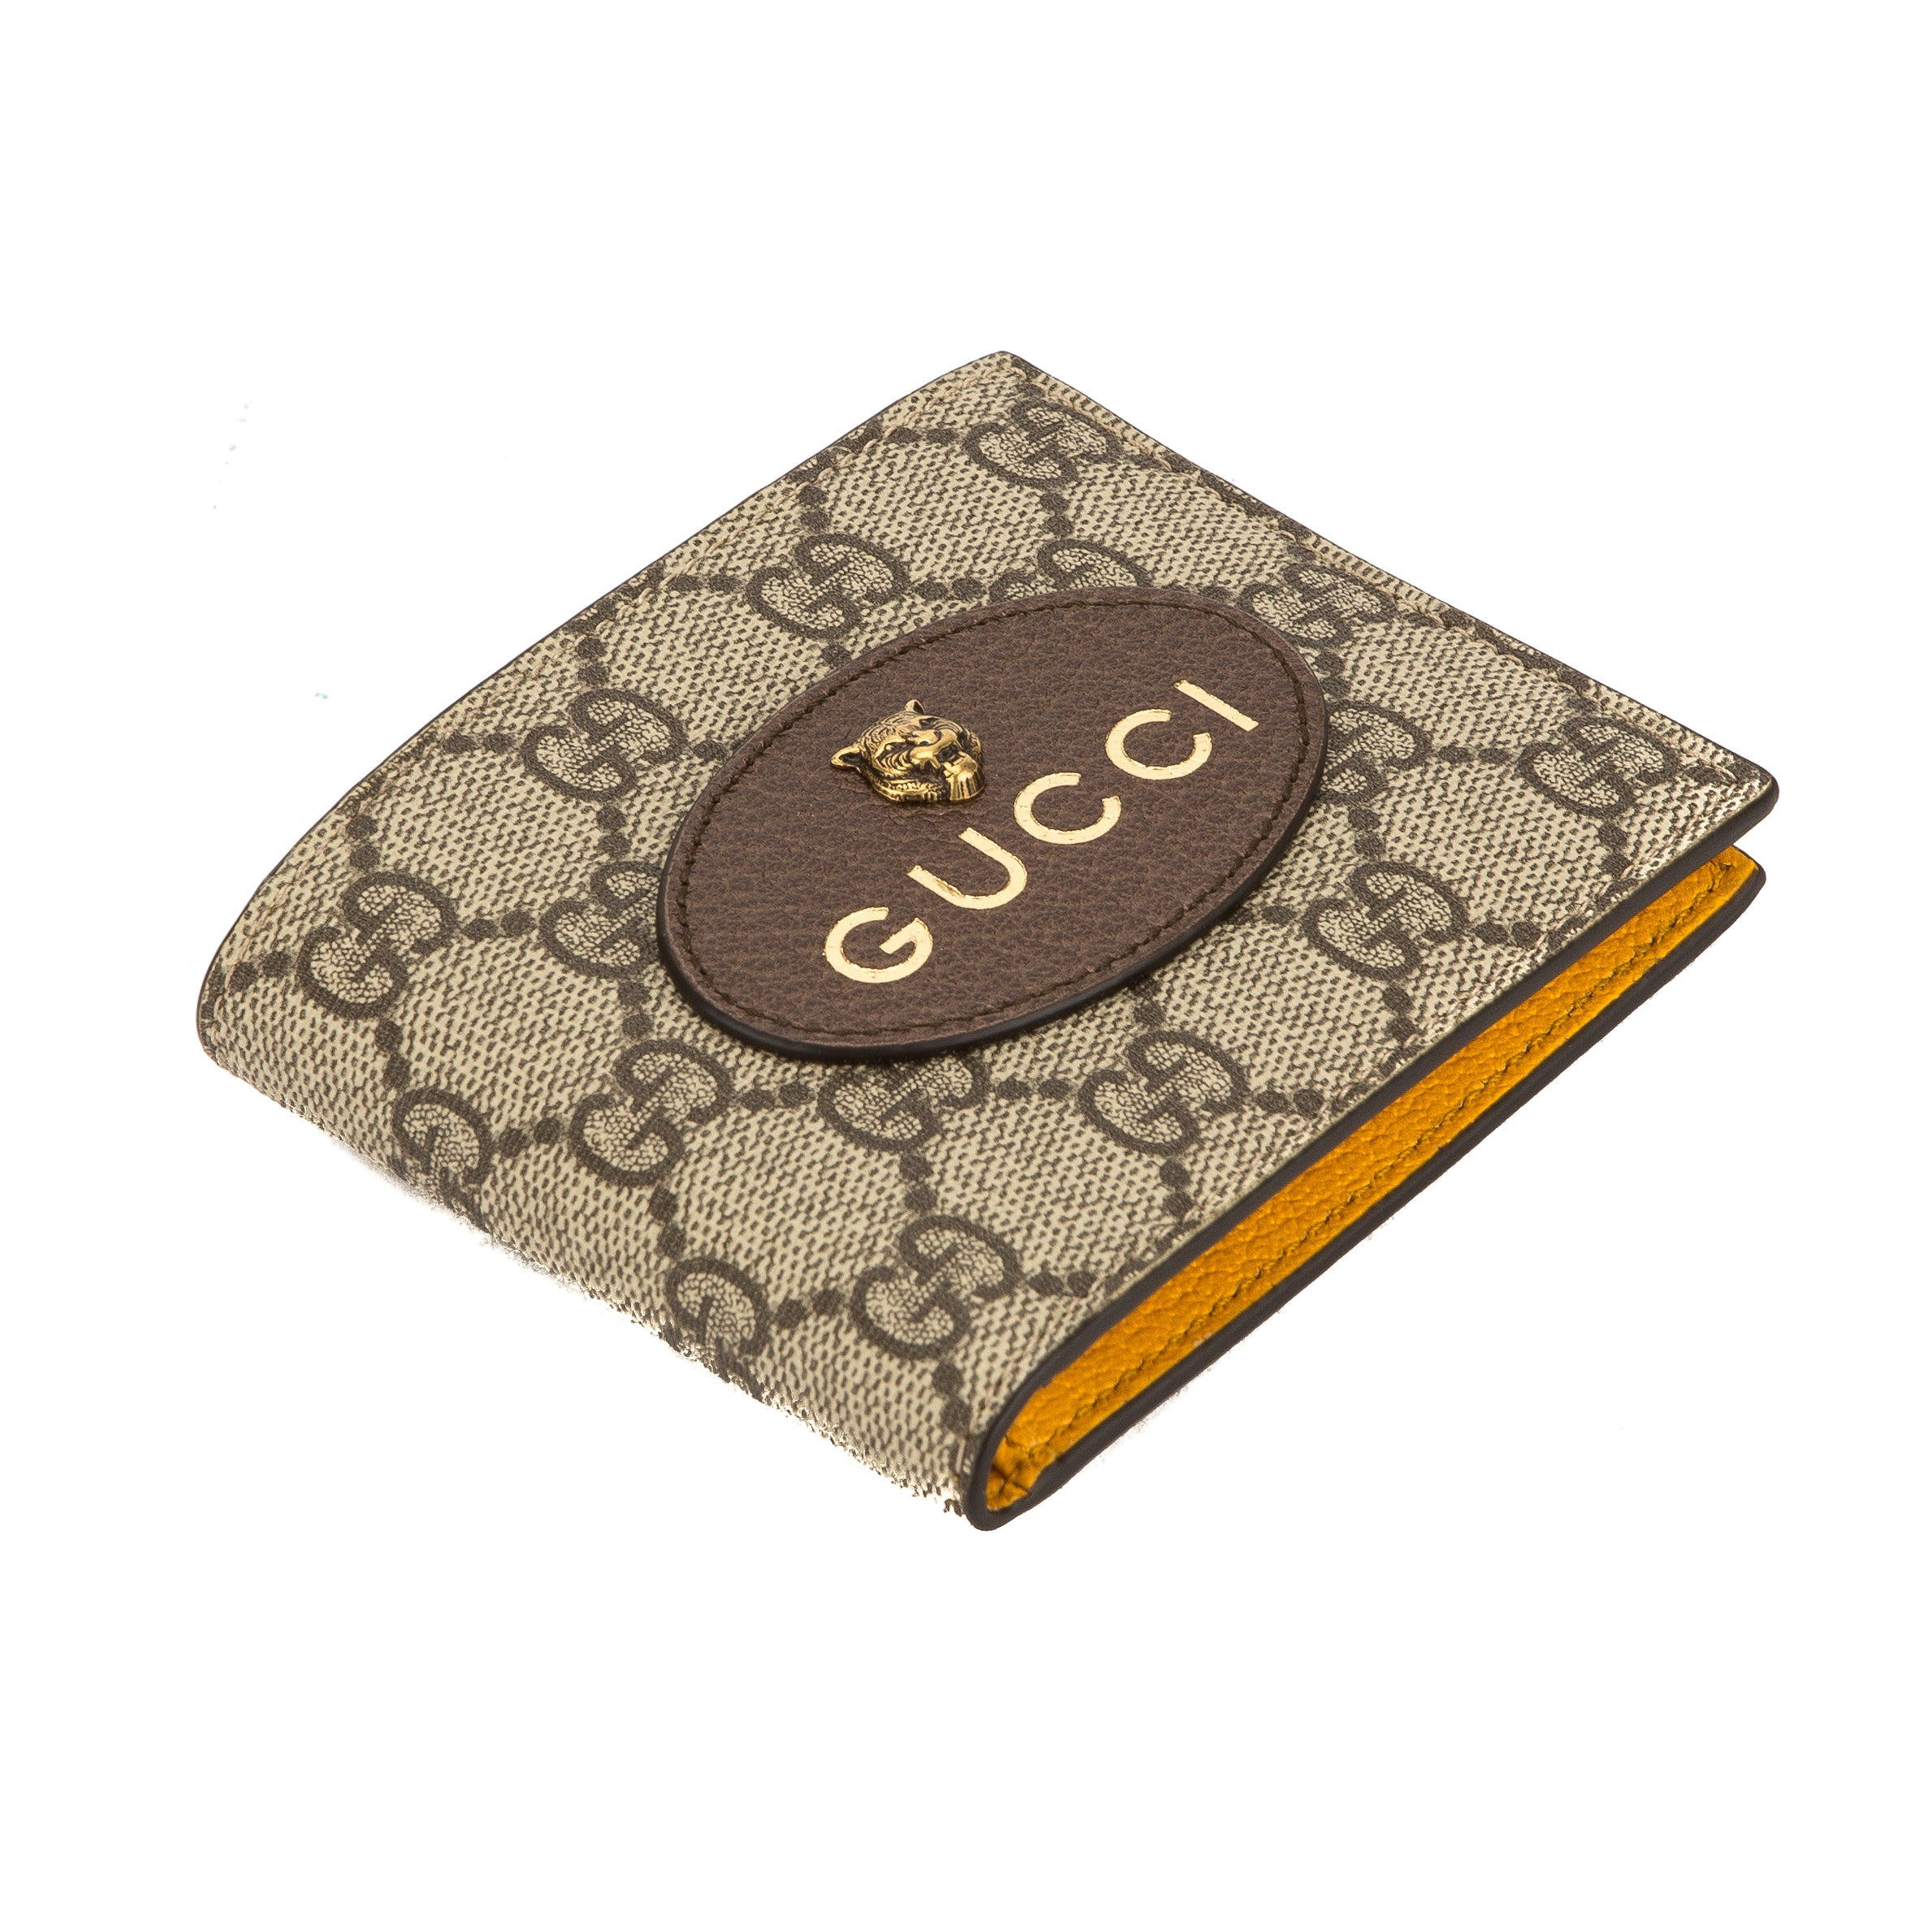 1da9349dbda6 Gucci GG Supreme Canvas Neo Vintage Wallet (New with Tags) - 3659011 |  LuxeDH